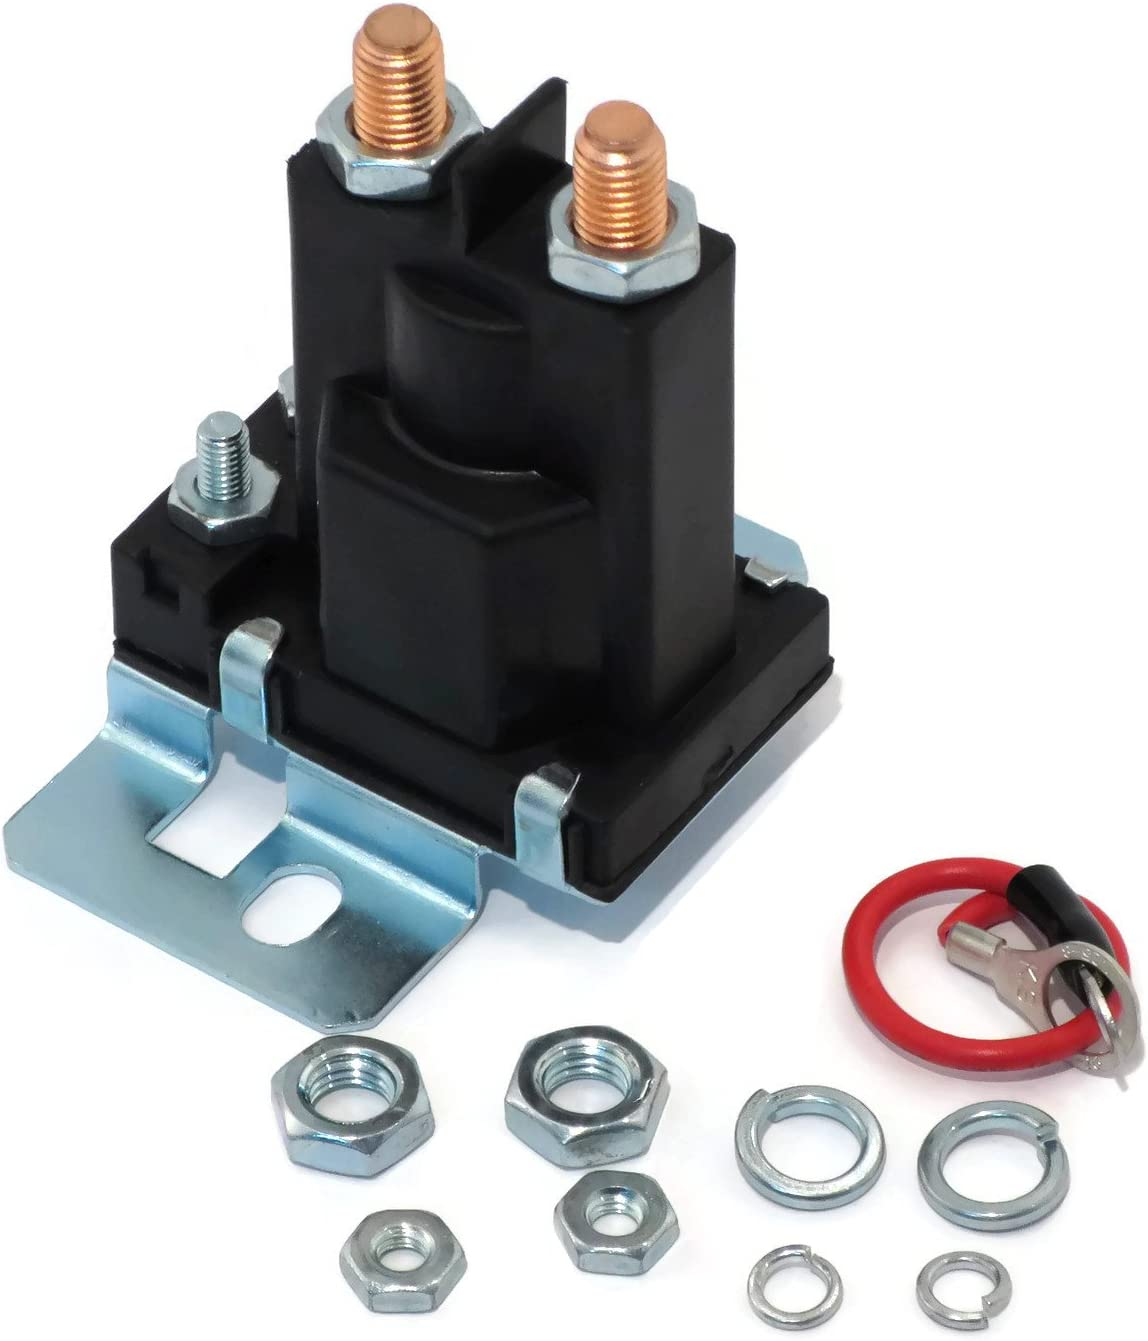 New Relay Solenoid for Western Fisher Meyers Snowplows 4 Post w/ Hardware